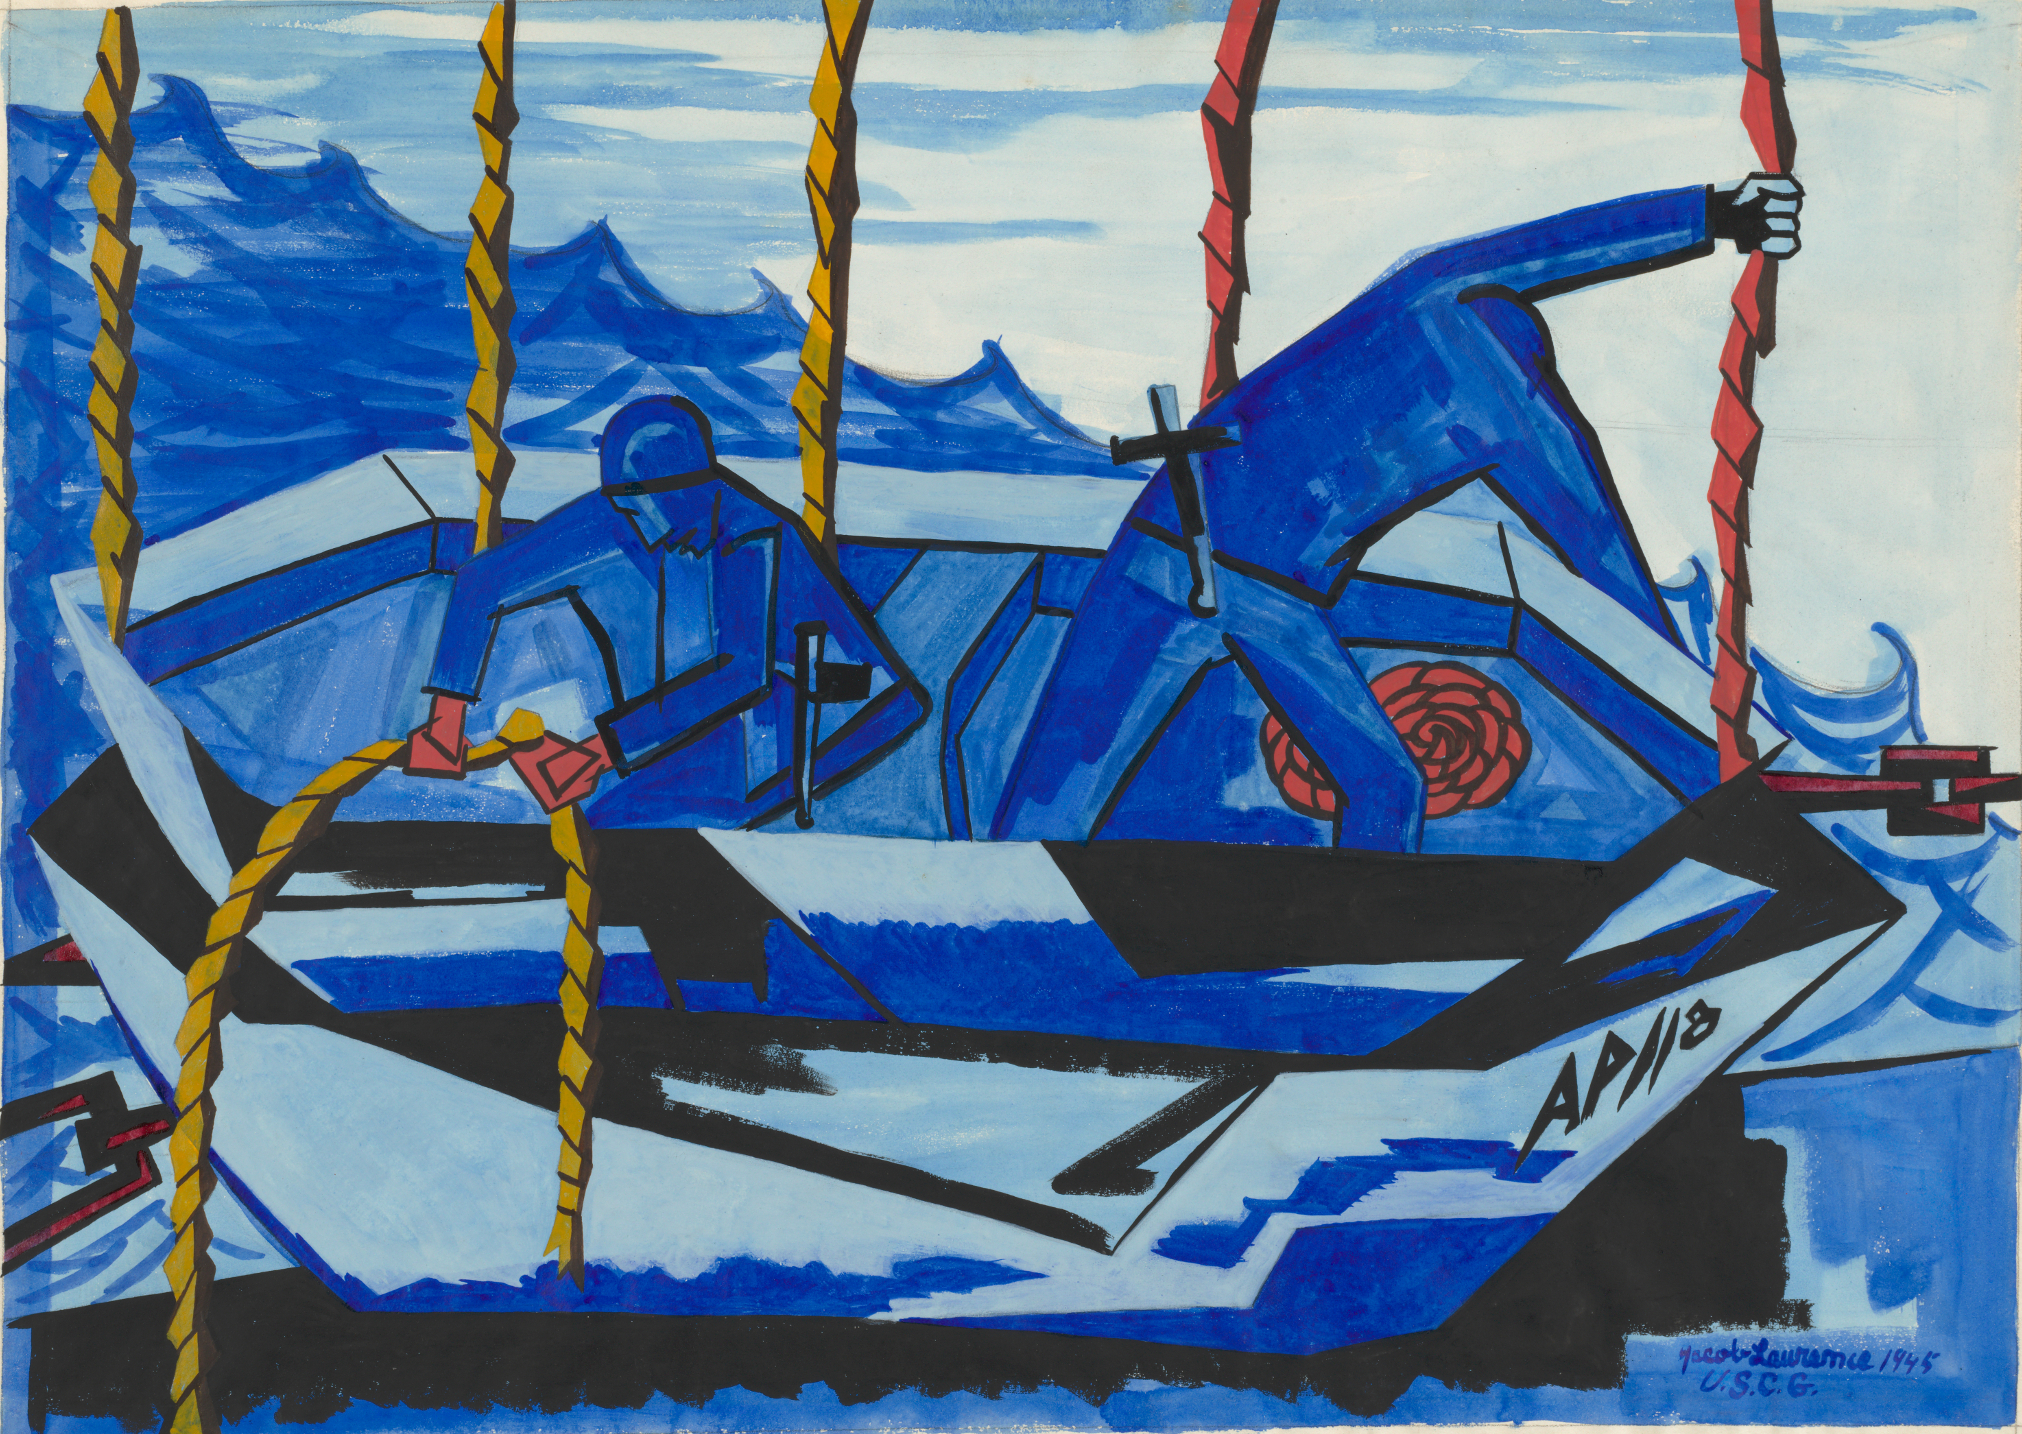 Jacob Lawrence. Lifeboat. 1945. The Baltimore Museum of Art: Purchased as the gift of the Art Committee of the Women's Cooperative Civic League, BMA 1946.135. © The Jacob and Gwendolyn Knight Lawrence Foundation, Seattle / Artists Rights Society (ARS), New York